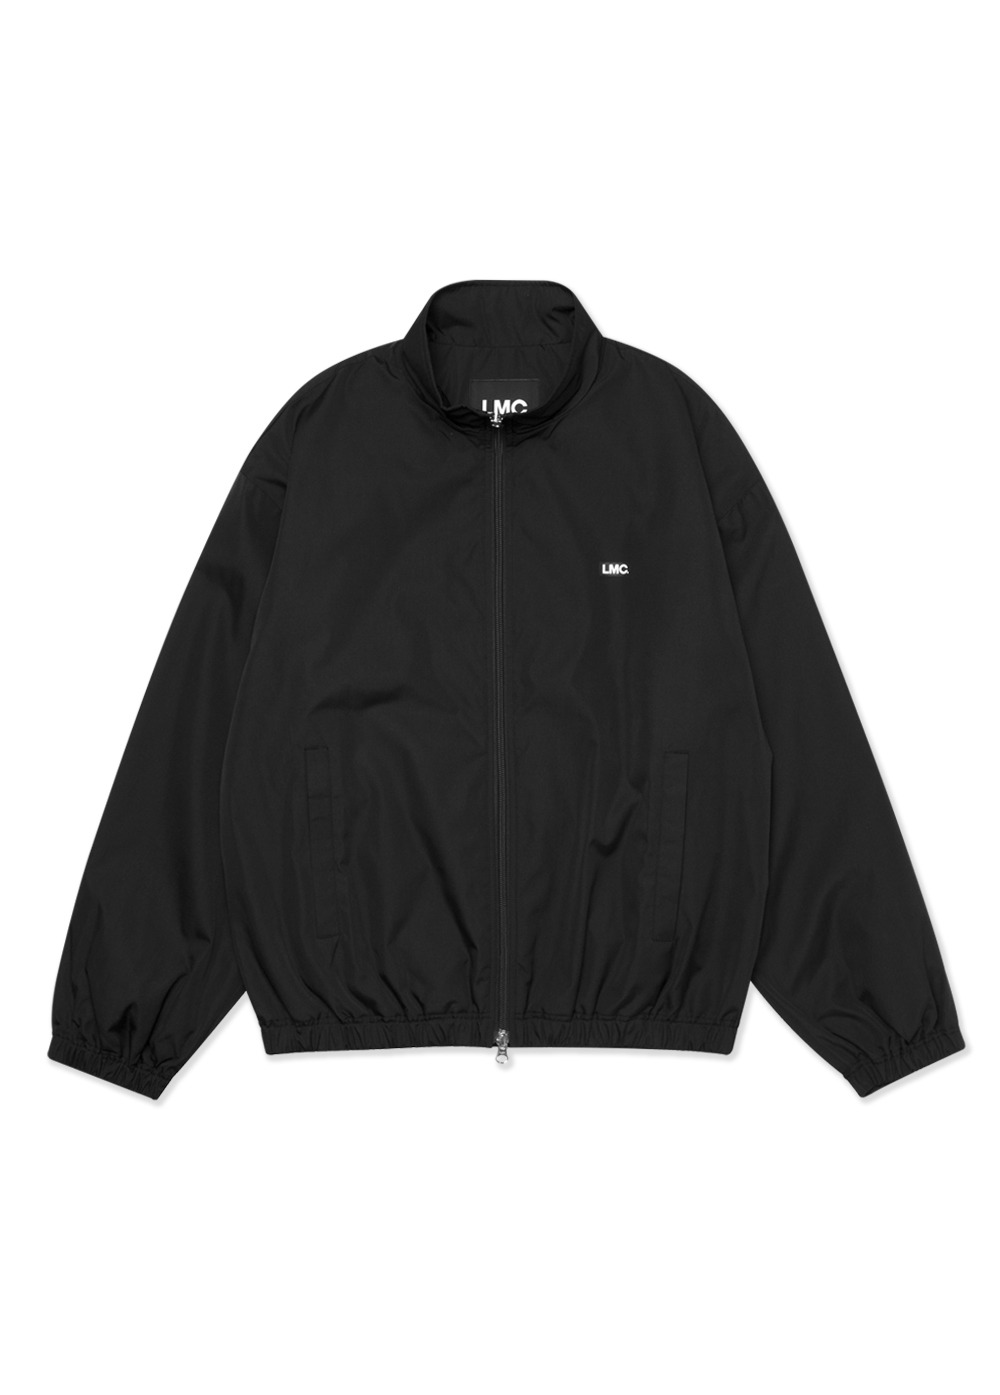 LMC IDEAL TRACK JACKET black